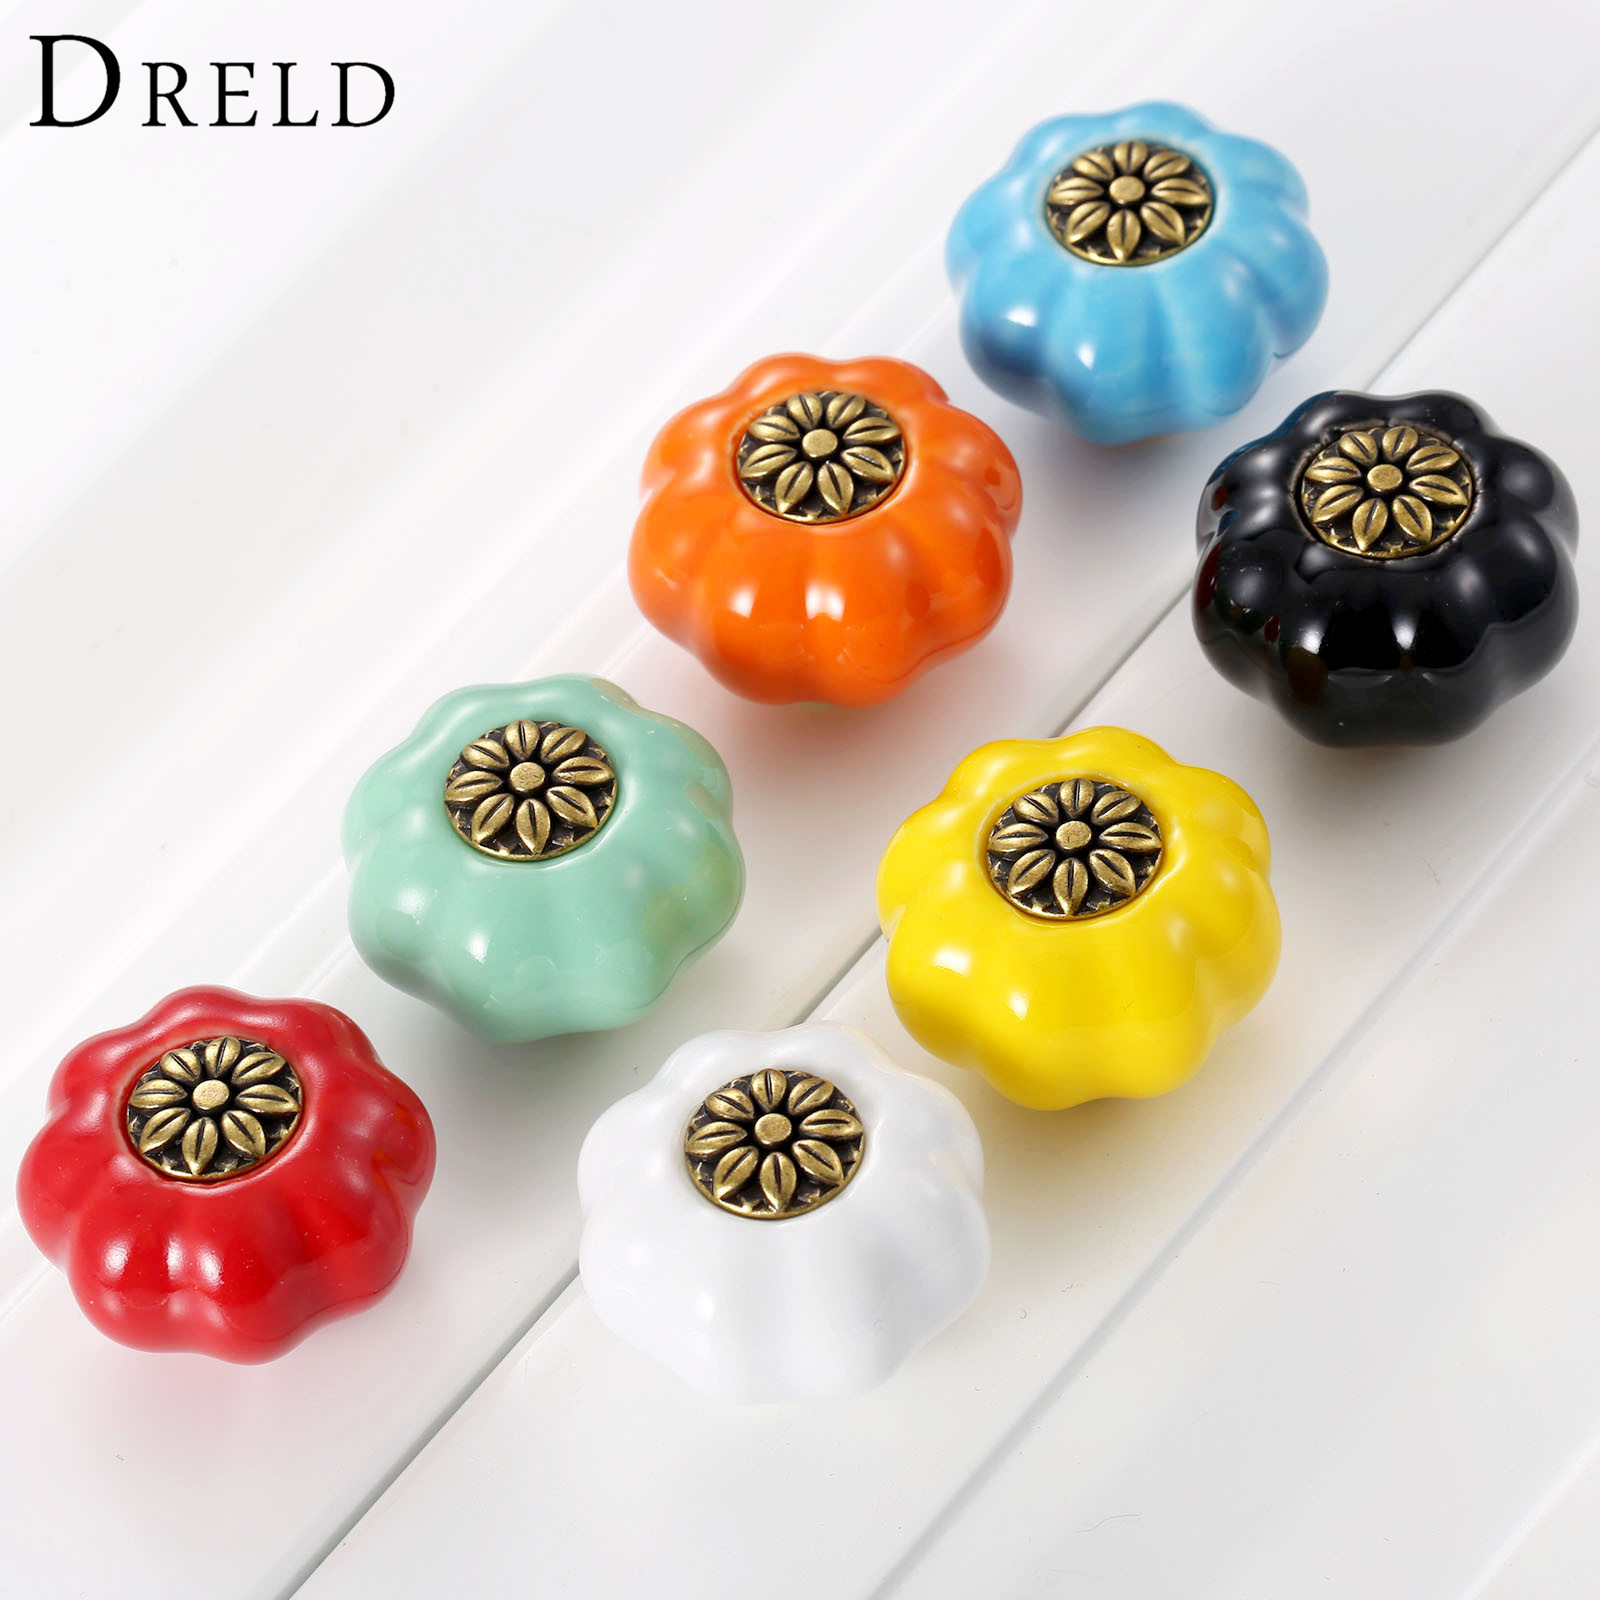 DRELD Pumpkin Furniture Handle Ceramic Door Knob Cupboard Drawer Cabinet Knob and Handles Kitchen Pull Handle Furniture Hardware pastoralism pumpkin ceramic knob kitchen ceramic door cabinets cupboard knob and handles 1pcs